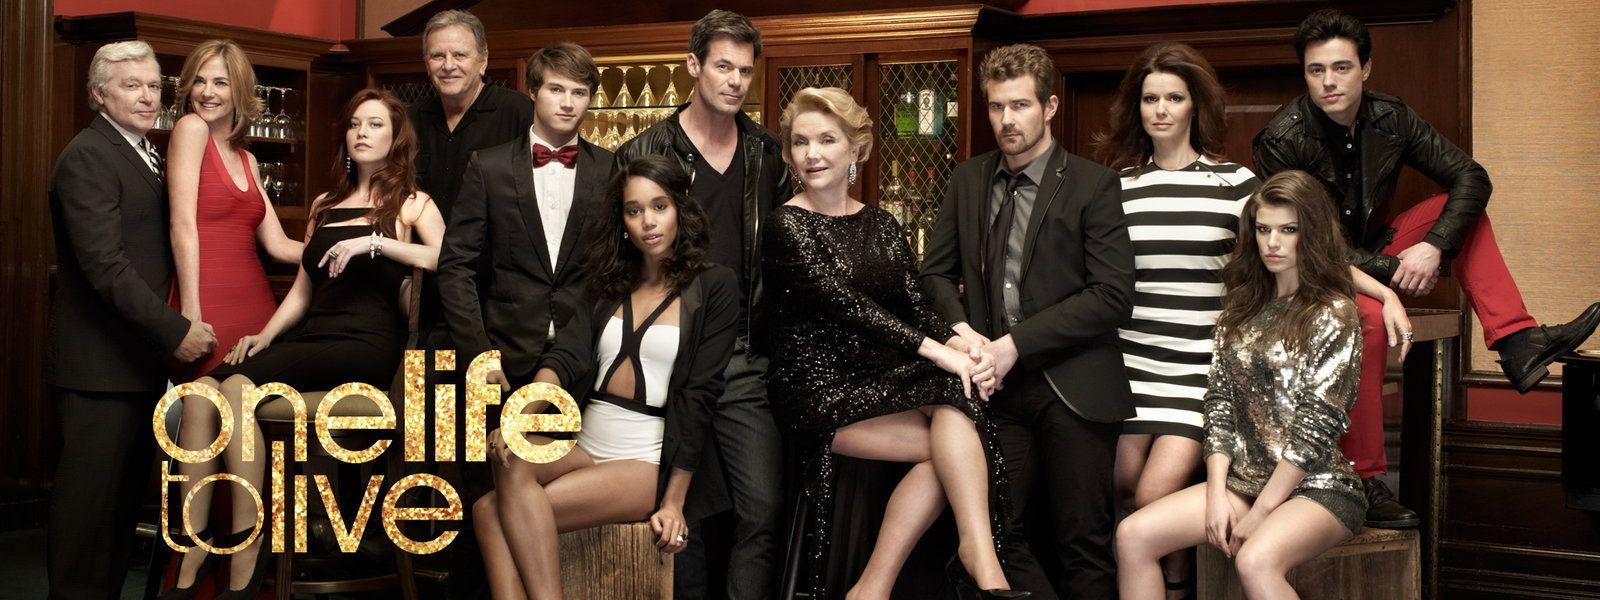 Watch One Life To Live online Free Hulu It cast, One